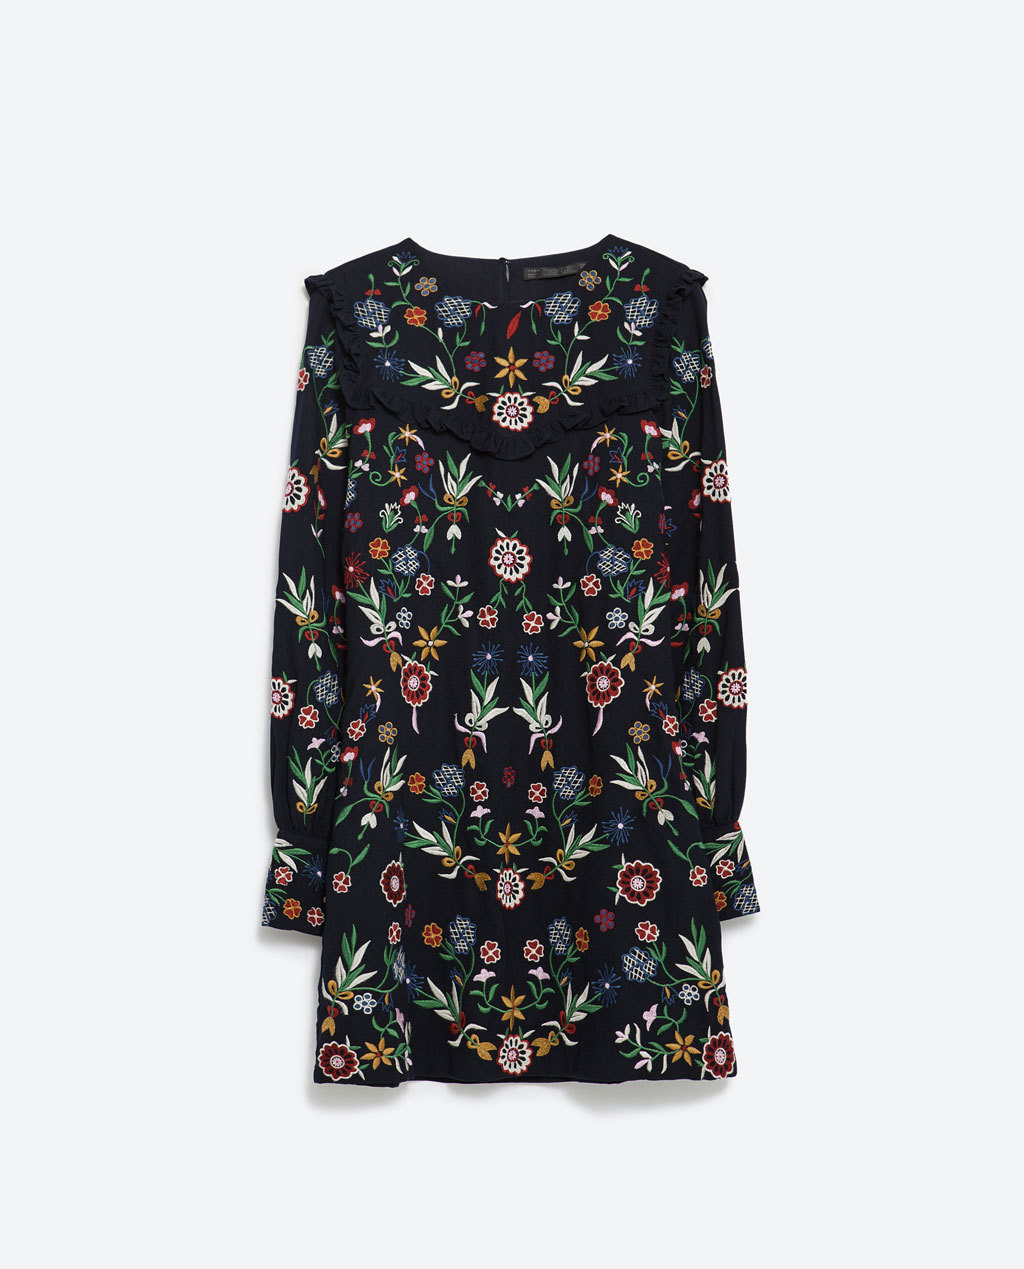 Embroidered Dress - style: shift; length: mini; secondary colour: emerald green; predominant colour: black; occasions: casual; fit: body skimming; fibres: polyester/polyamide - 100%; neckline: crew; sleeve length: long sleeve; sleeve style: standard; pattern type: fabric; pattern: florals; texture group: other - light to midweight; multicoloured: multicoloured; season: a/w 2015; wardrobe: highlight; embellishment location: bust